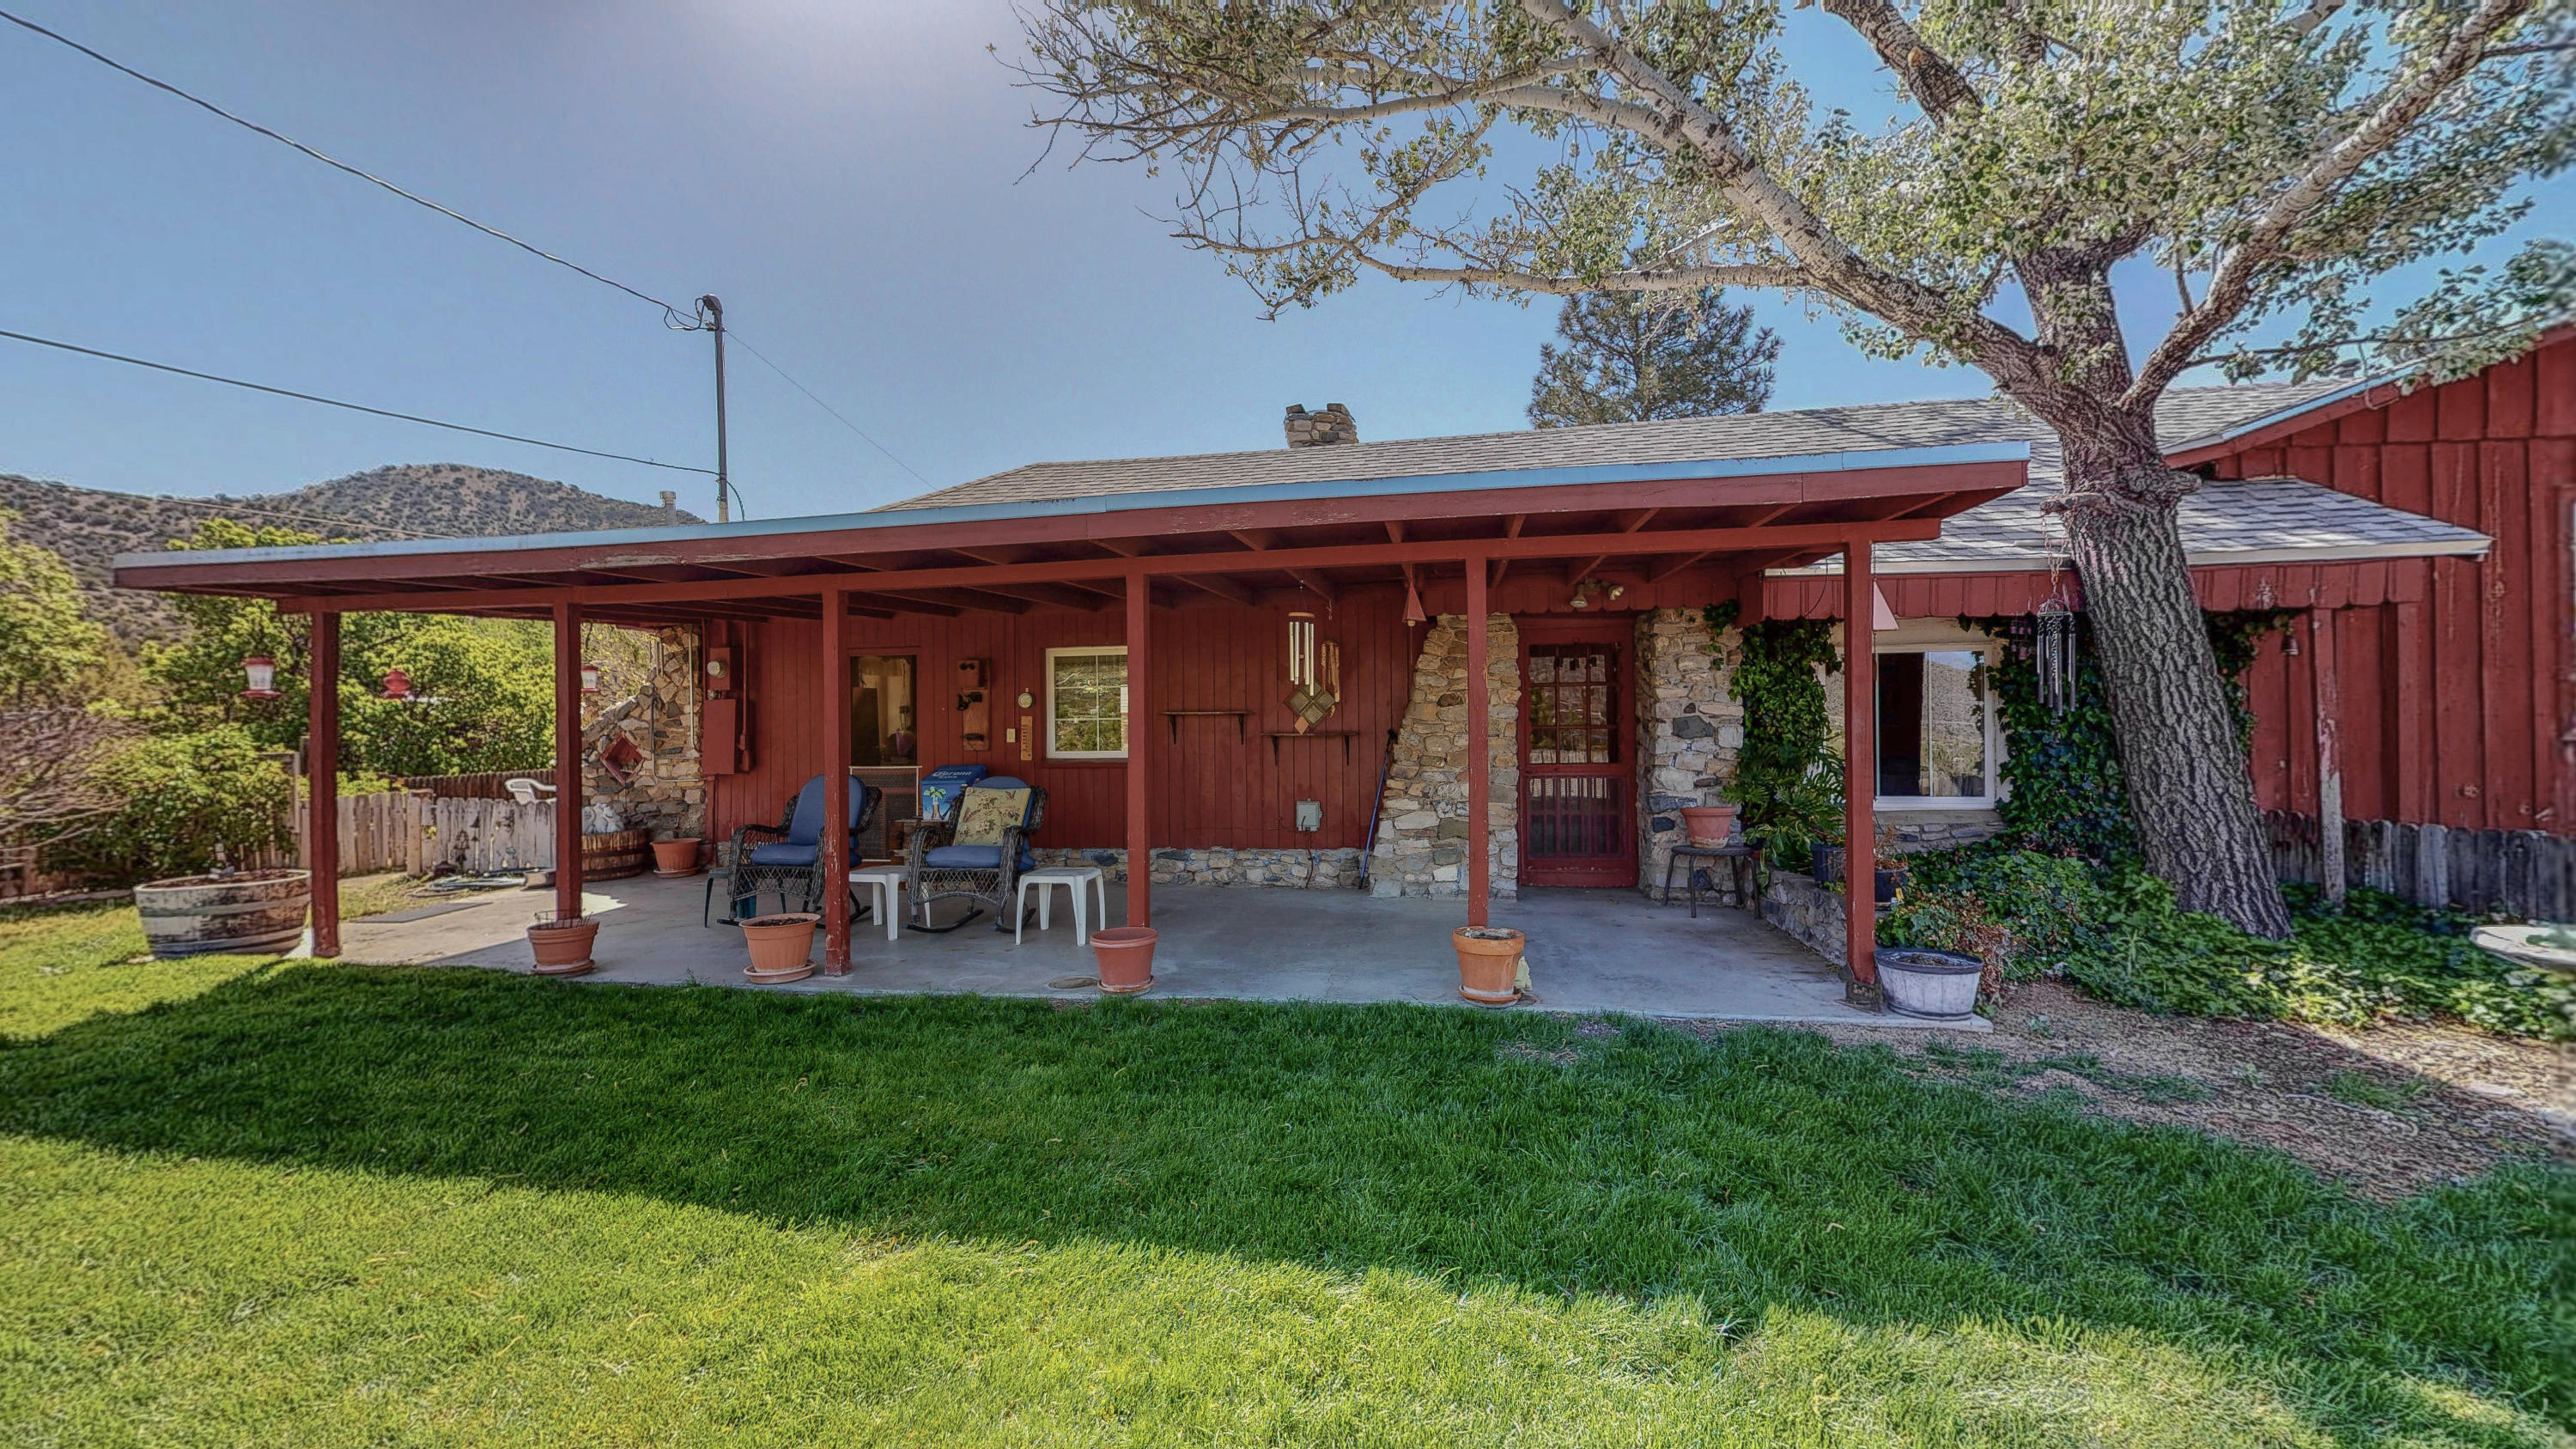 This 2,299 square ft. home set on 1.3 acres has scenic views in every direction with the Manzanos to the South and the Sandias to the North.  One unique feature is that it has a two story barn plus an additional rock storage building.  Vegas adorn two rooms of the home.  The home has a rural feel, but is less than ten minutes from Winrock Center.  This one of a kind home is a must see!